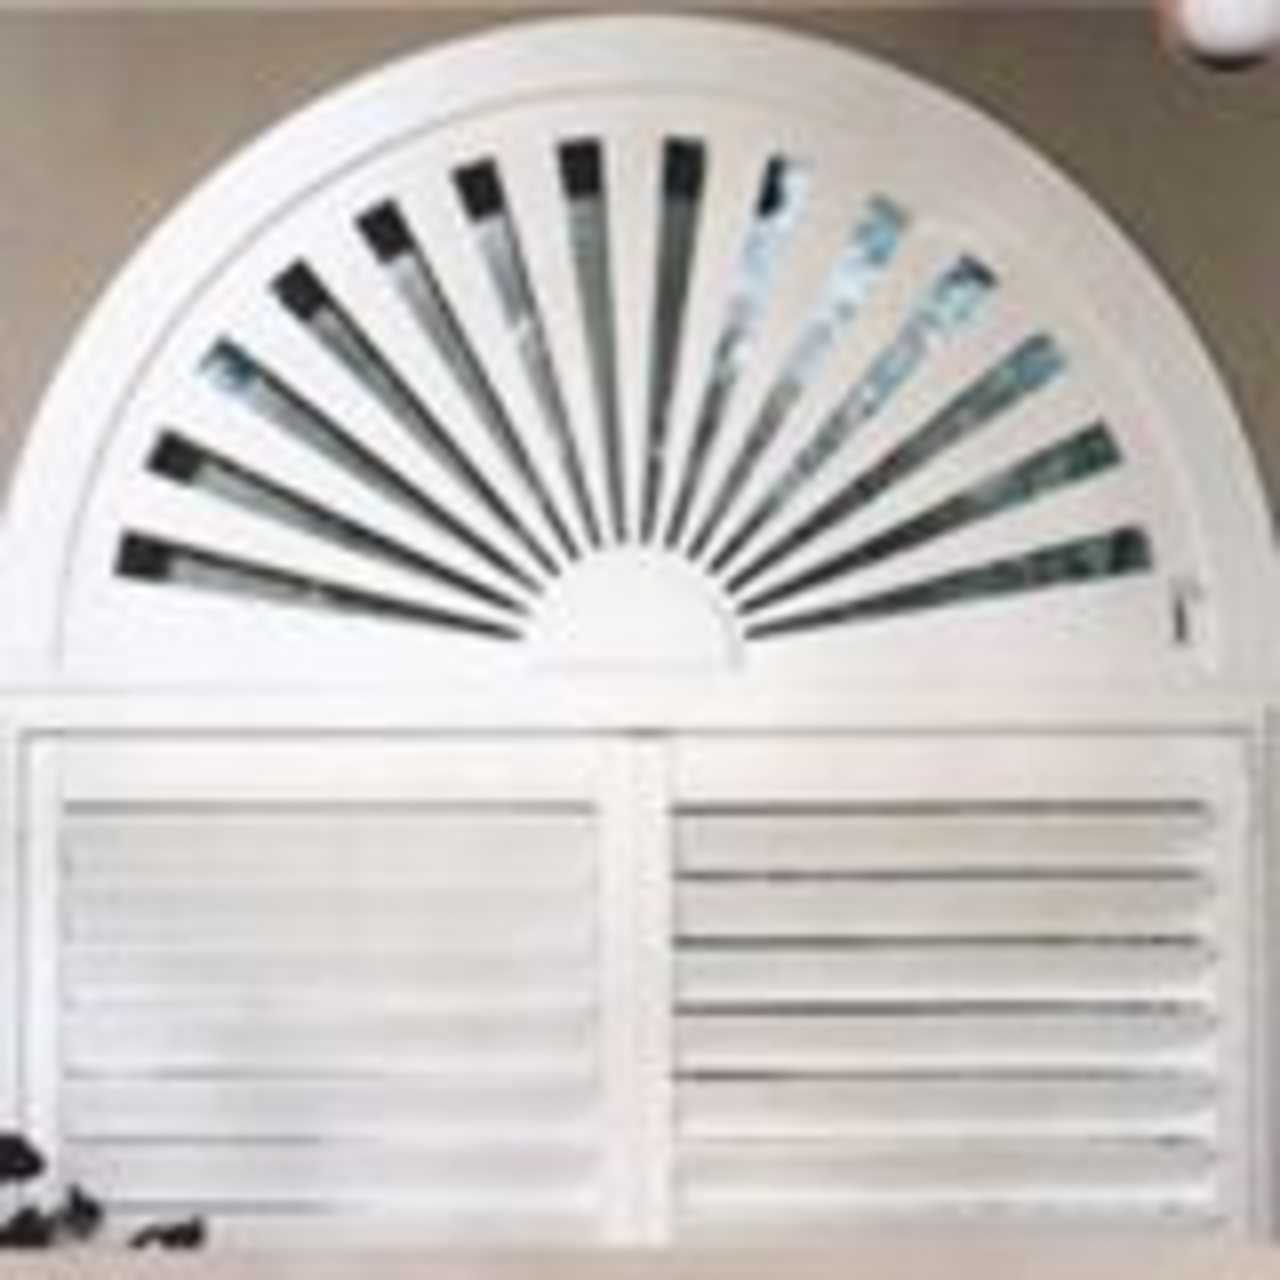 Decor & Designs Windows Fashions - Bradenton - Services - Doors and Windows in Bradenton FL